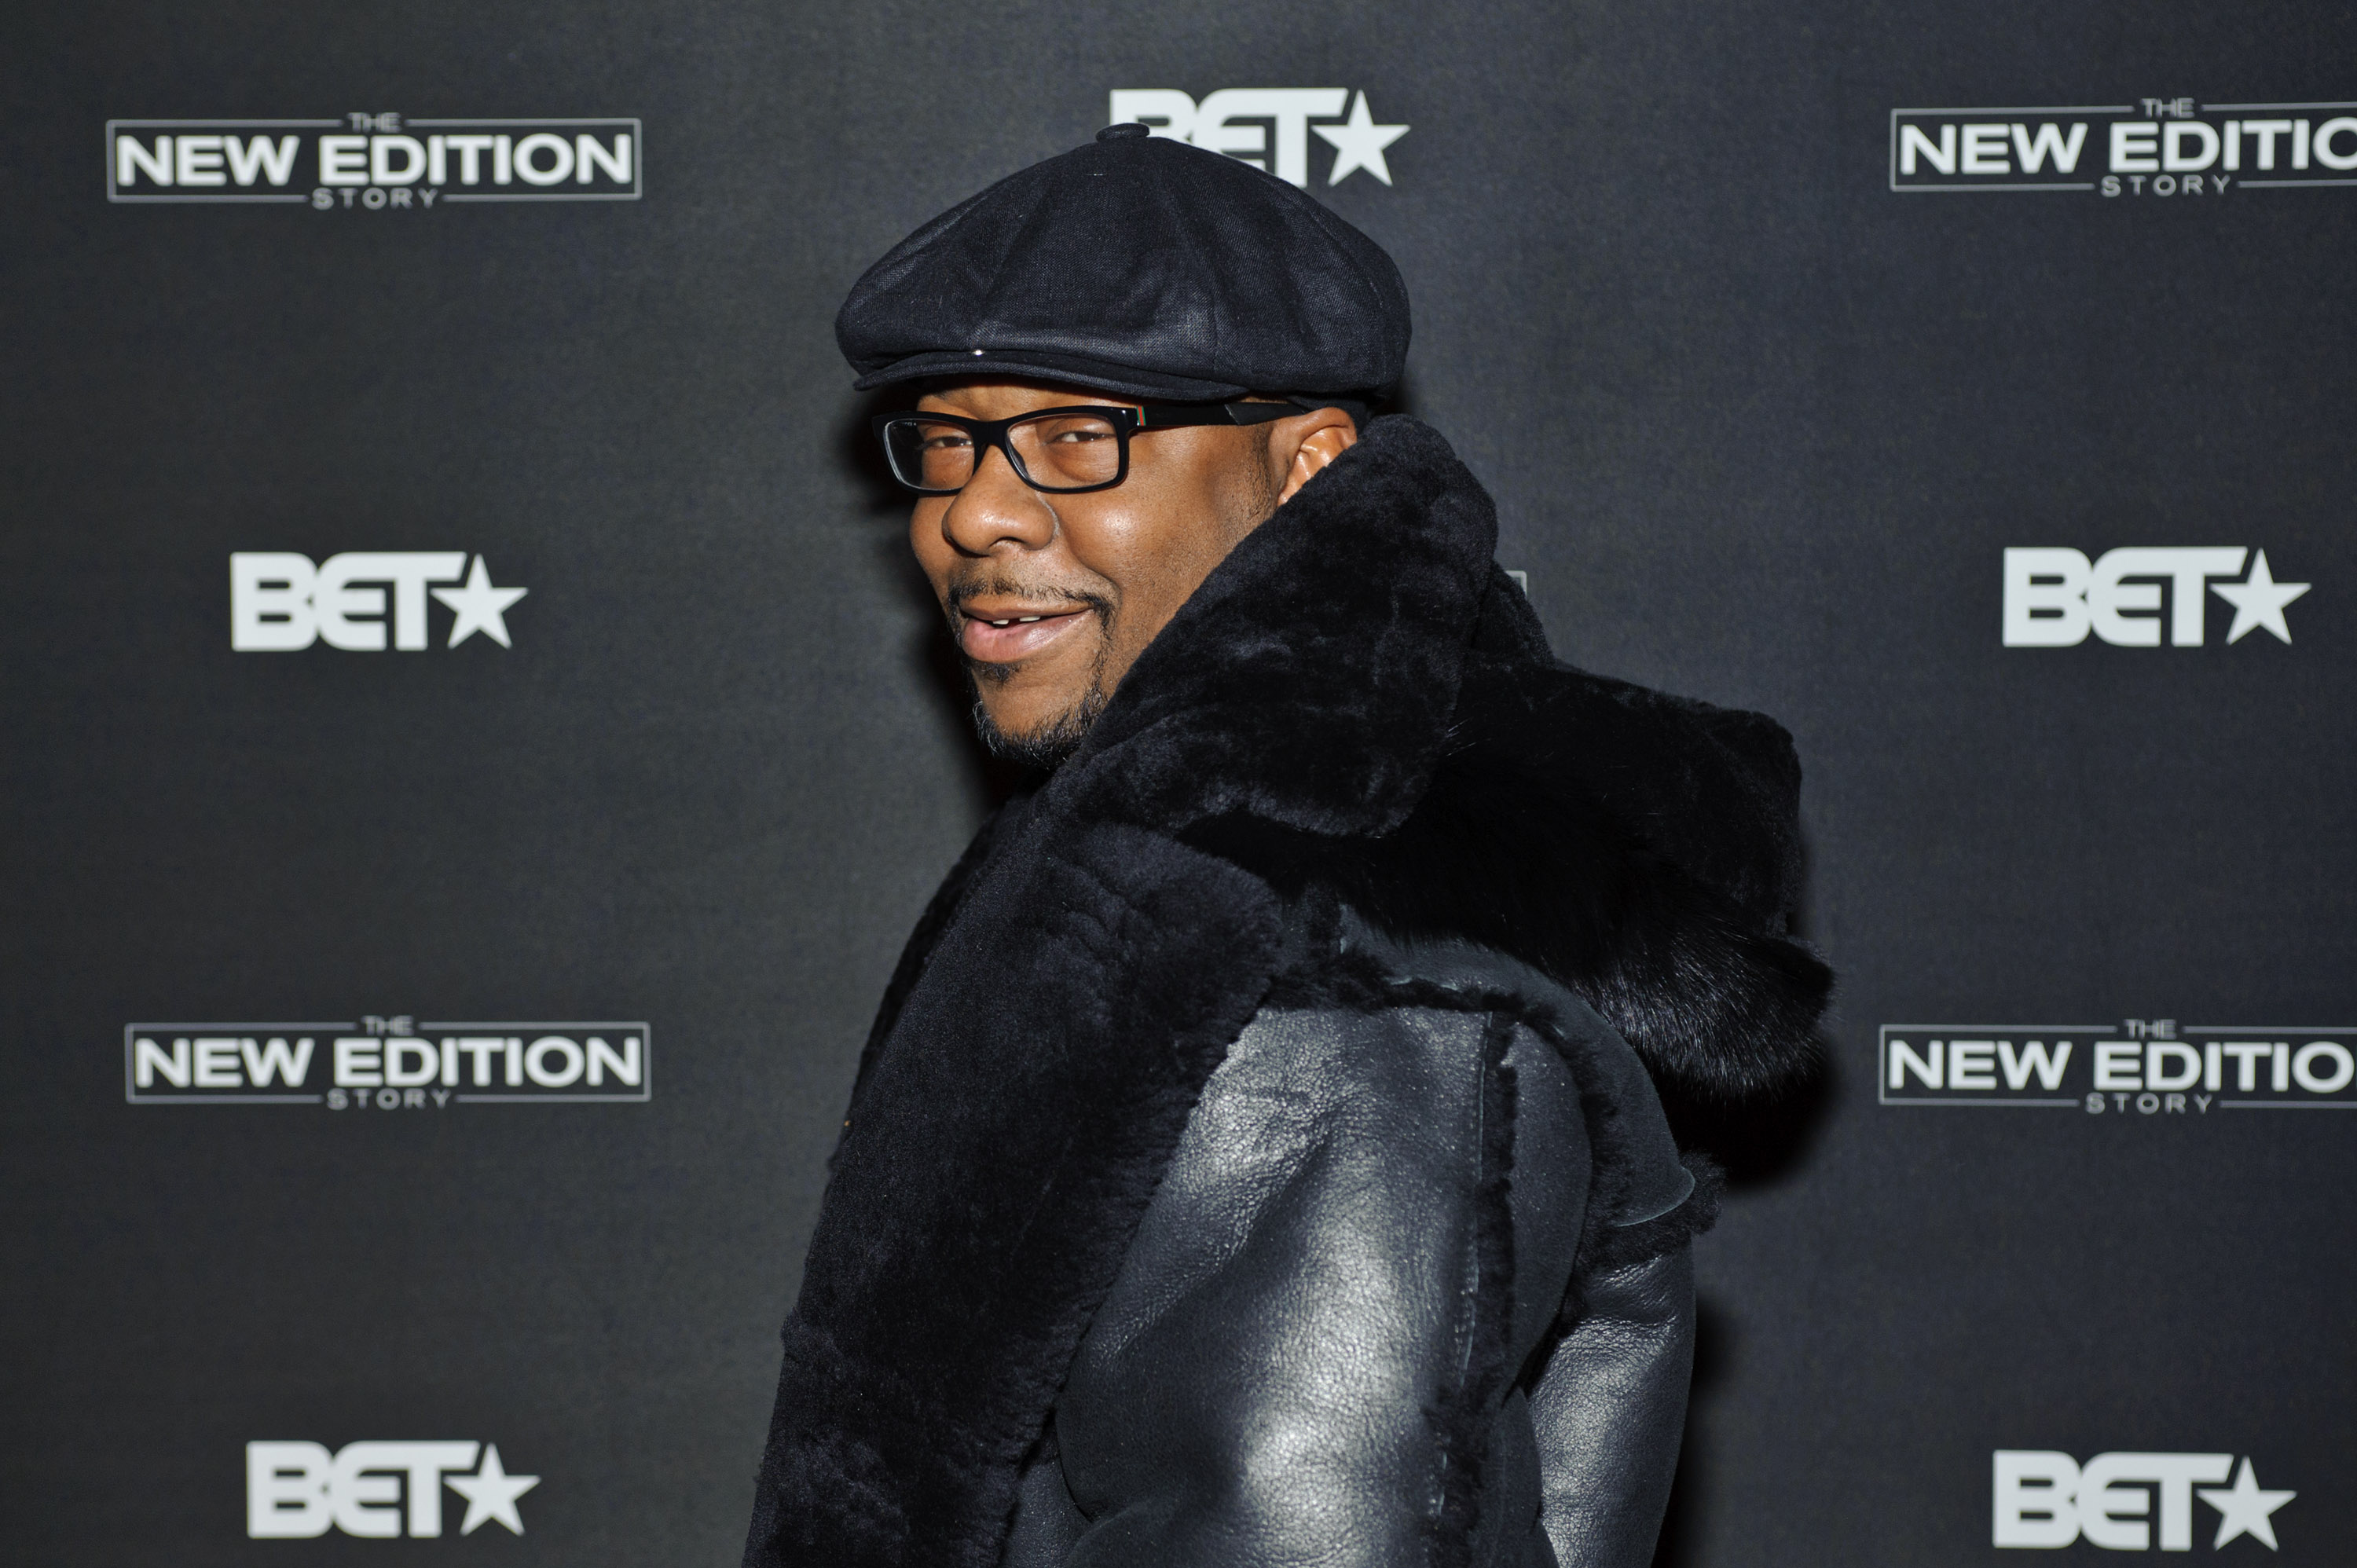 Bobby Brown Wants to Slap Kanye West for 'Daytona' Cover